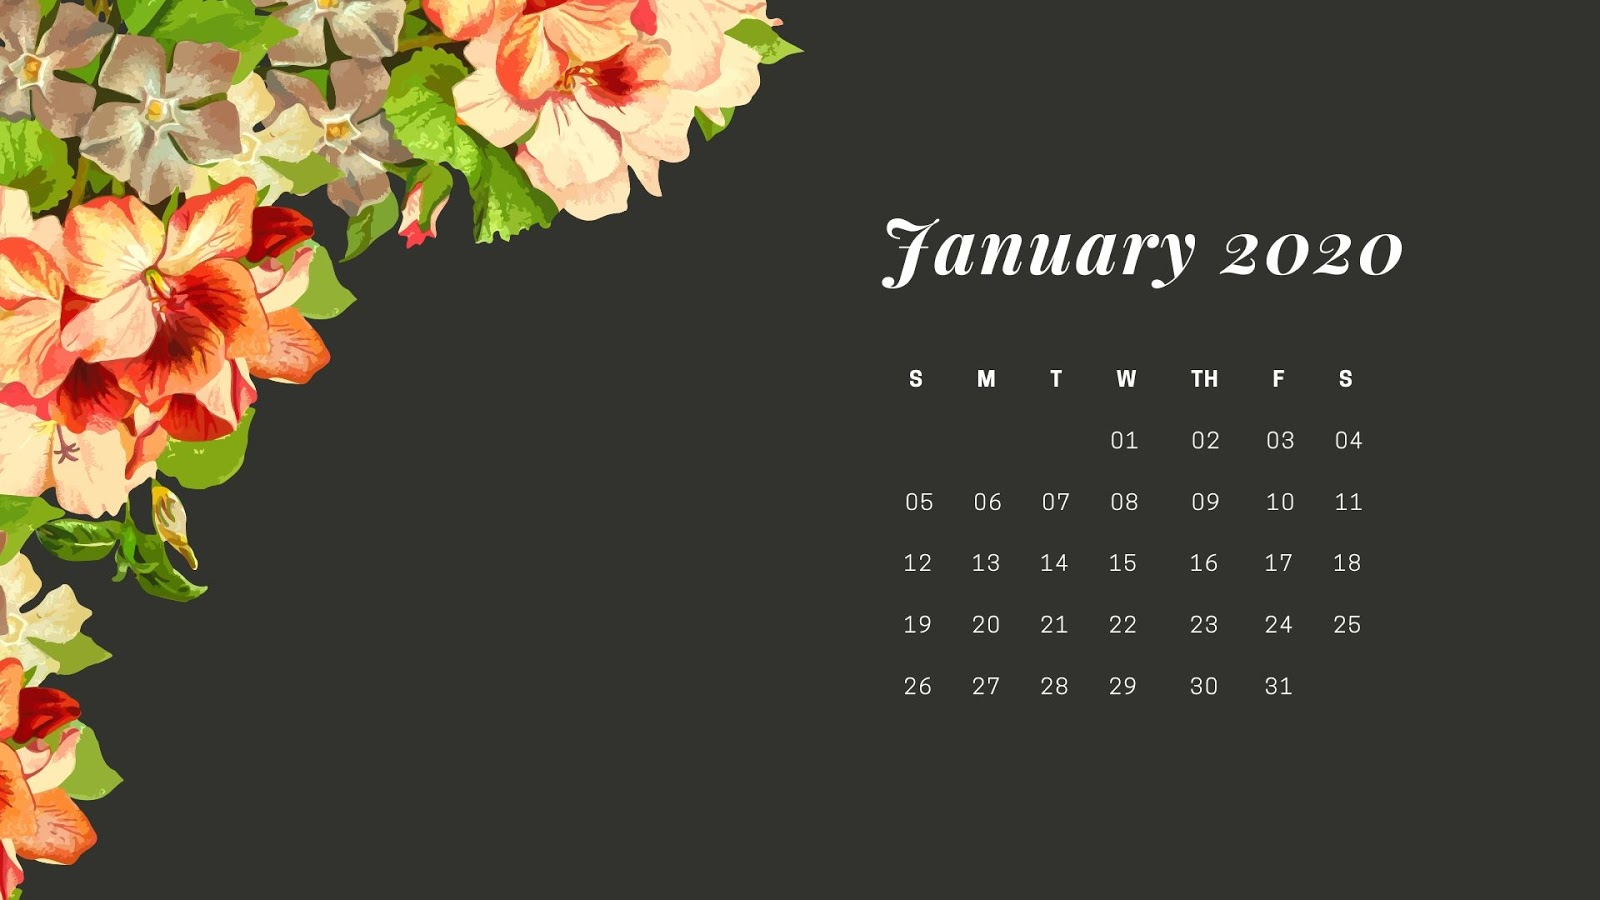 January 2020 Calendar images HD Wallpaper